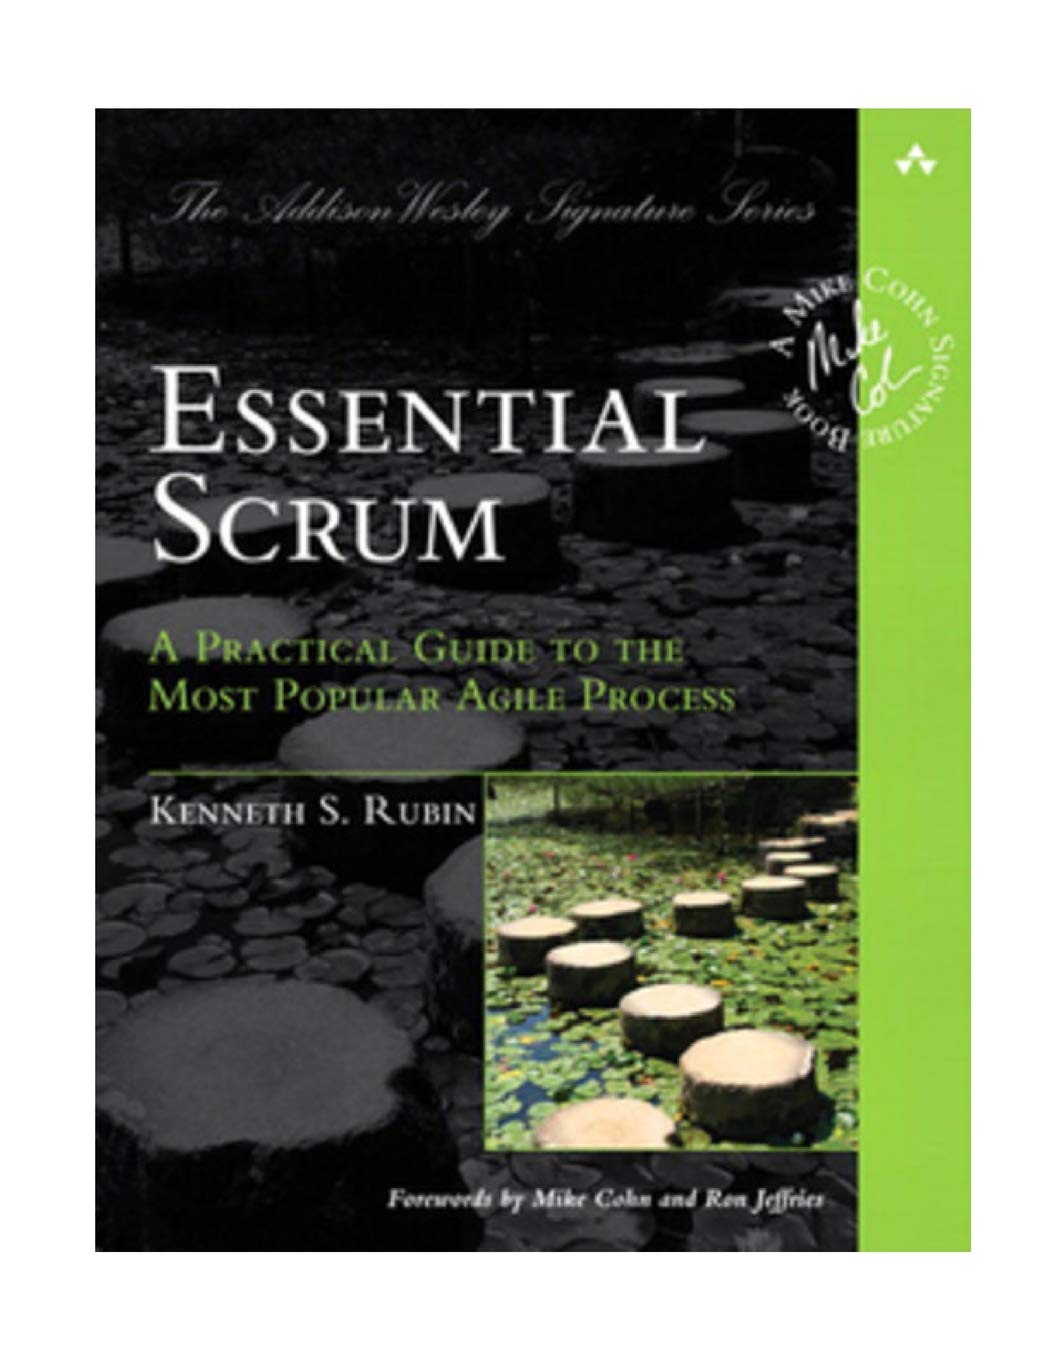 Essential Scrum: A Practical Guide to the Most Popular Agile Process Addison-Wesley Signature : A Practical Guide To The Most Popular Agile Process ...